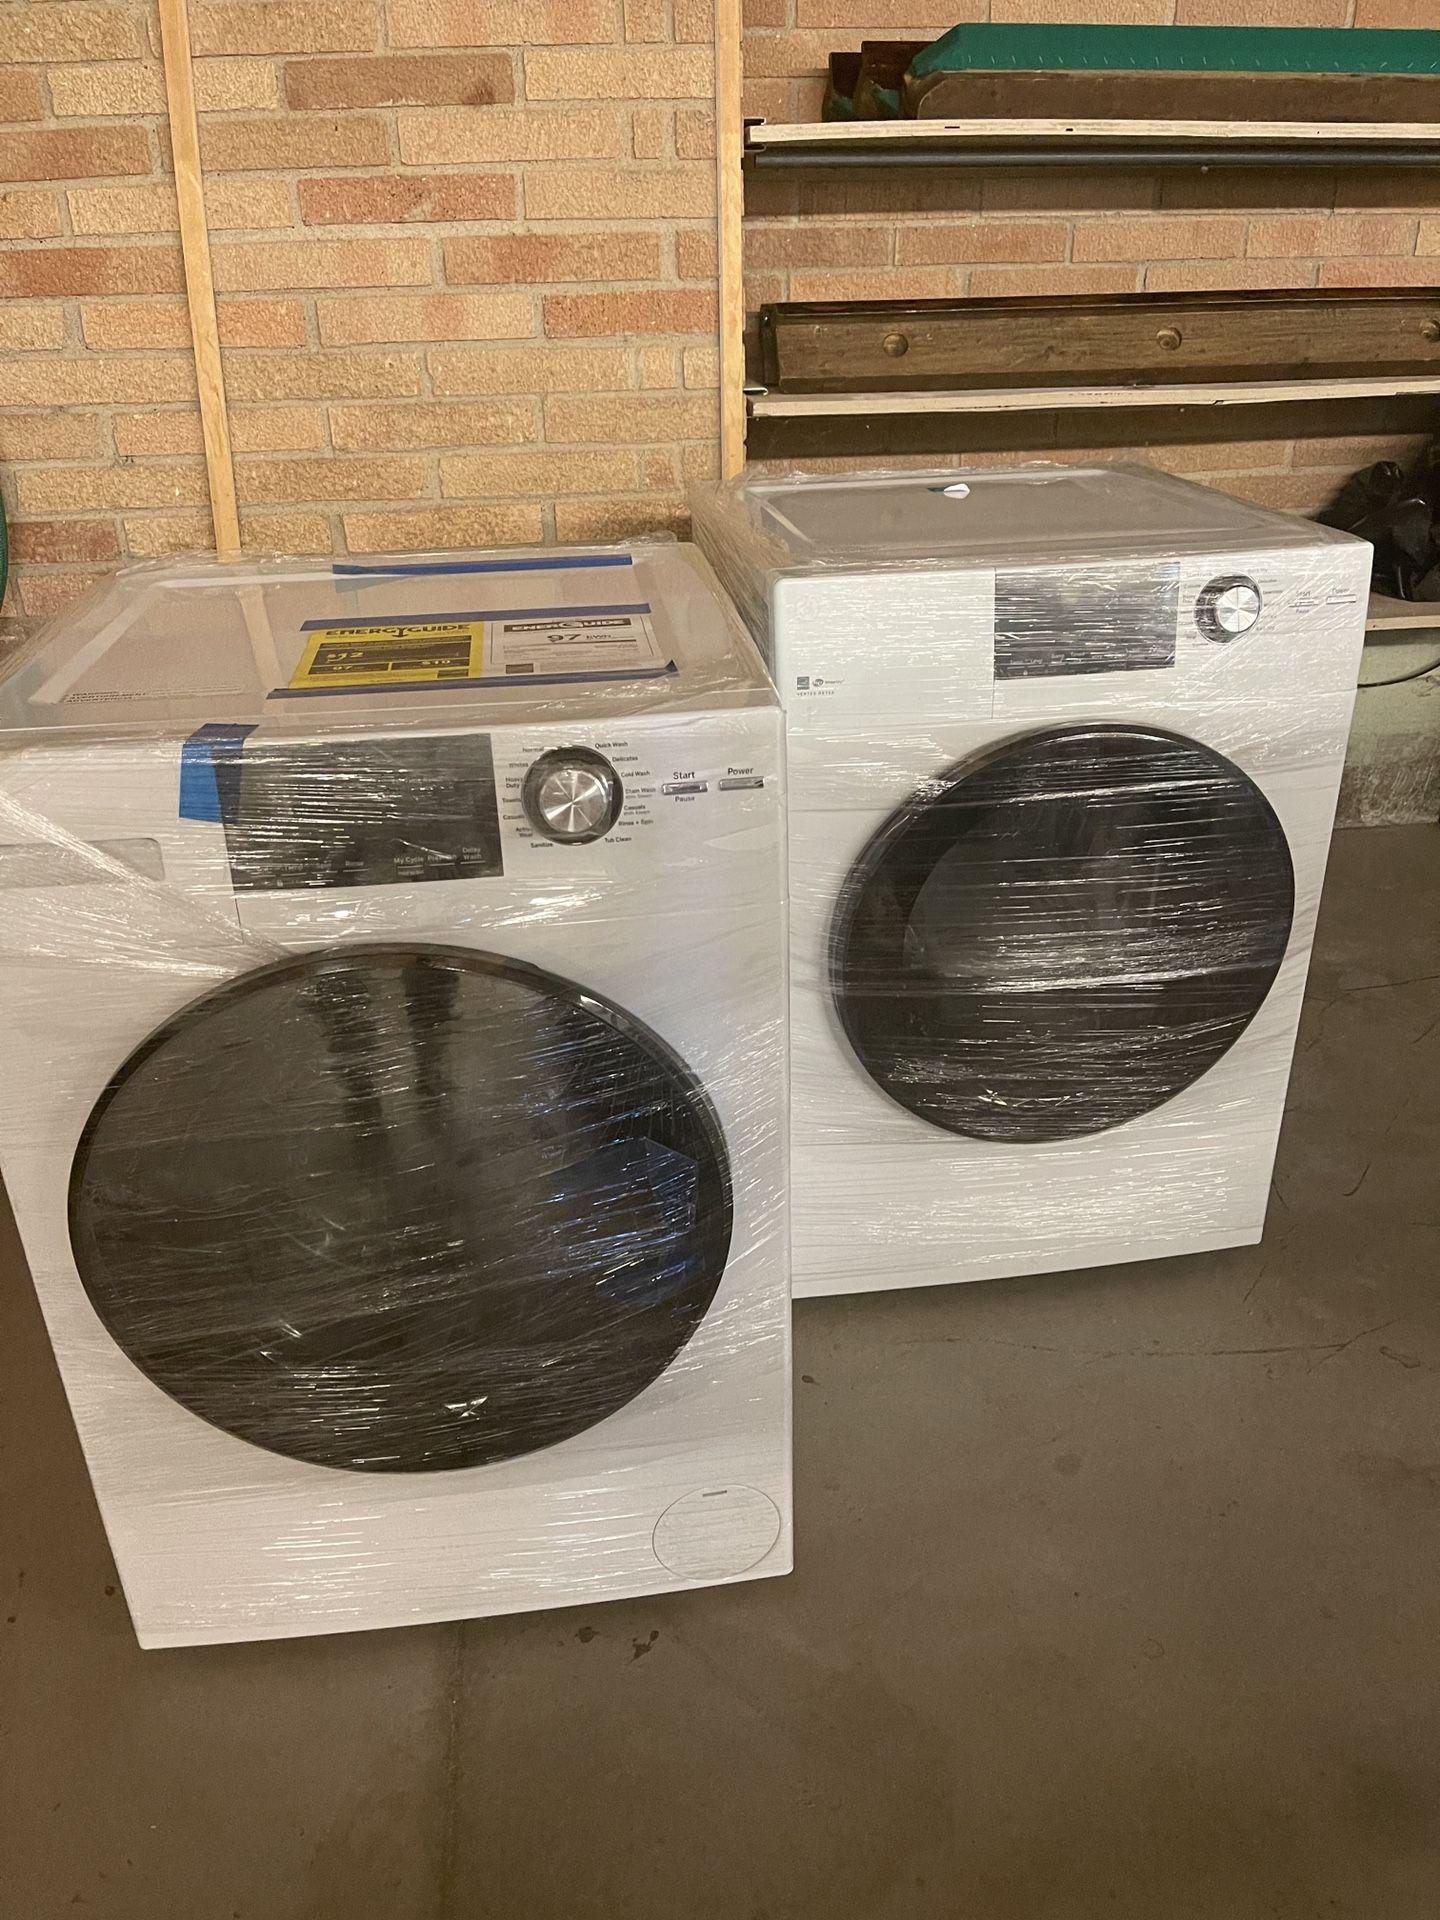 GE 2.4-cu ft High Efficiency Stackable Steam Cycle Front-Load Washer and dryer